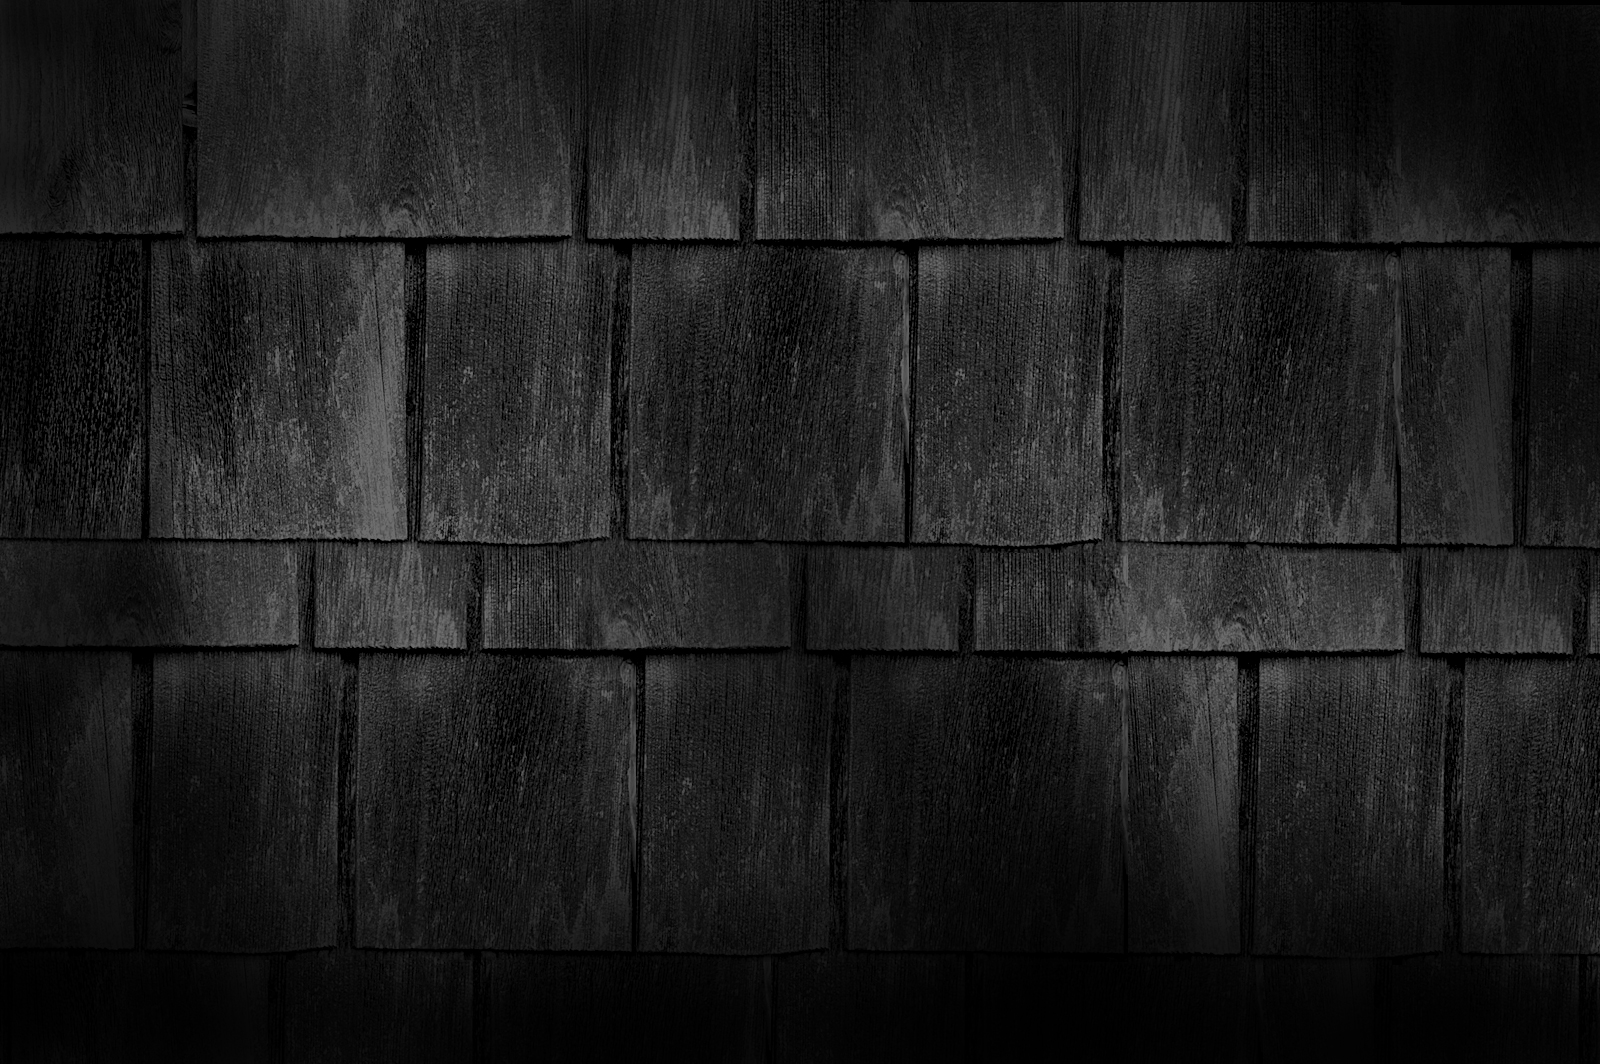 Free Download Black Wood Wallpaper Hd Android Desktop Abstract